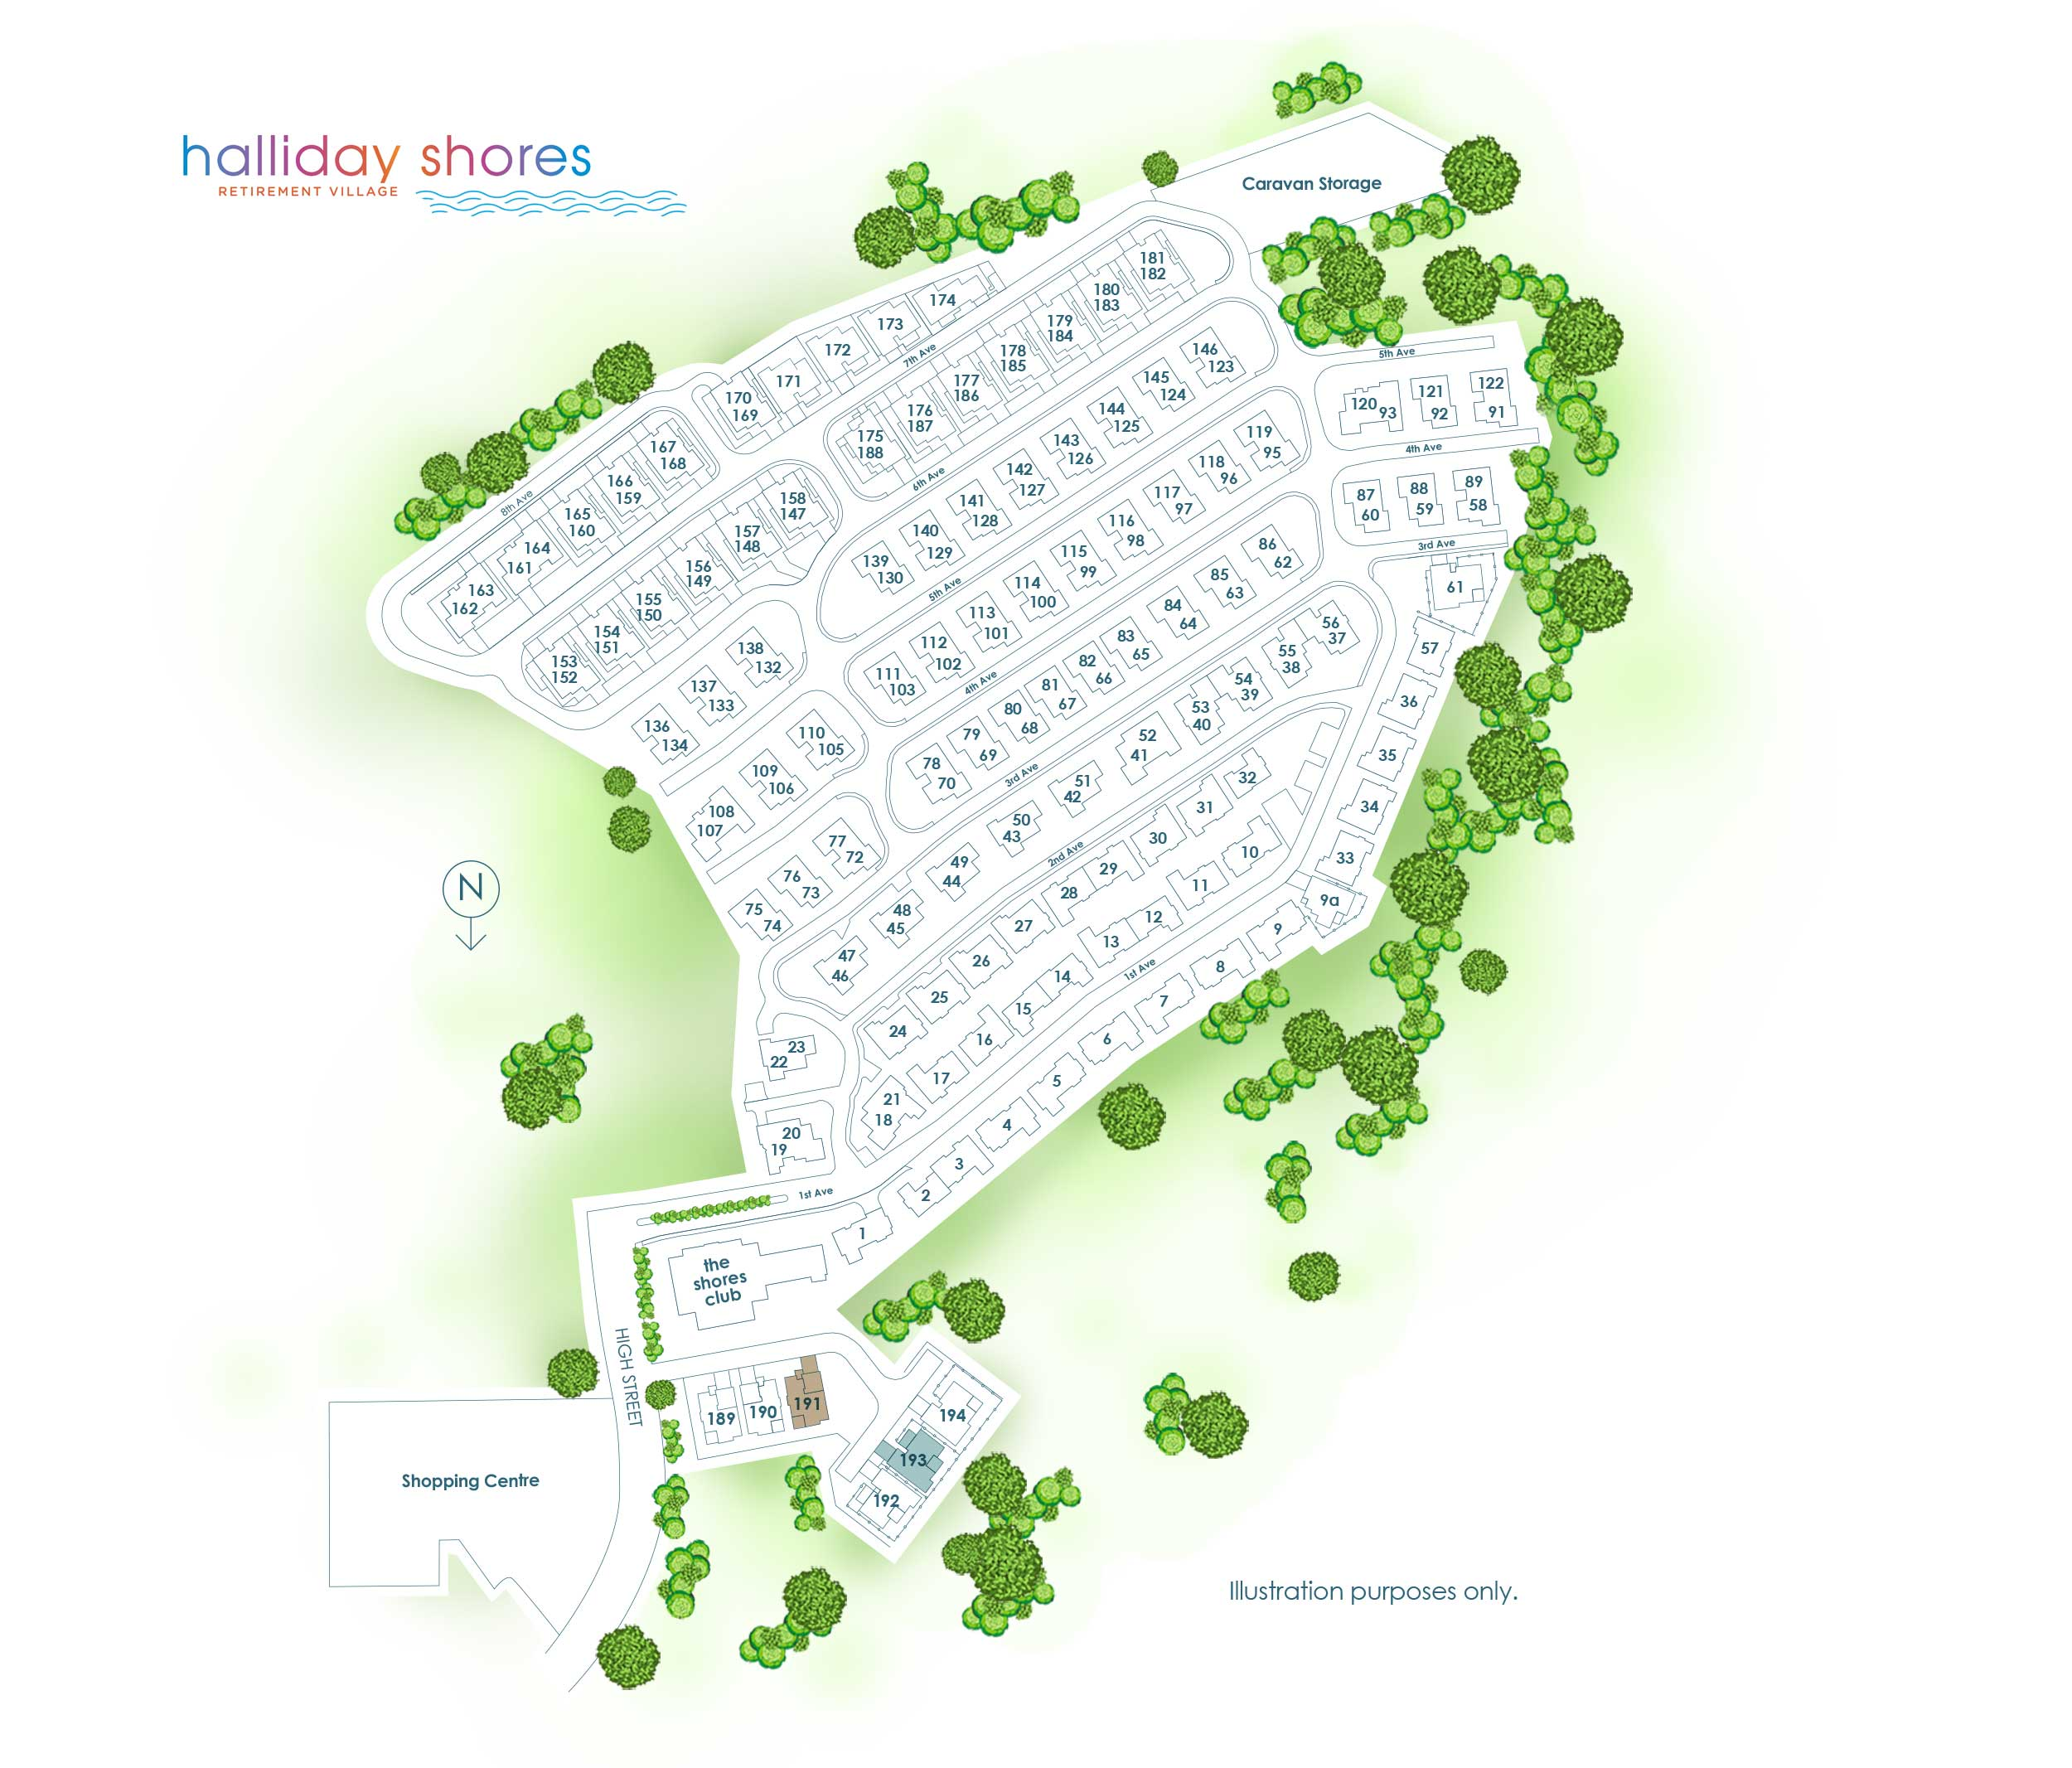 halliday_shores_site_plan